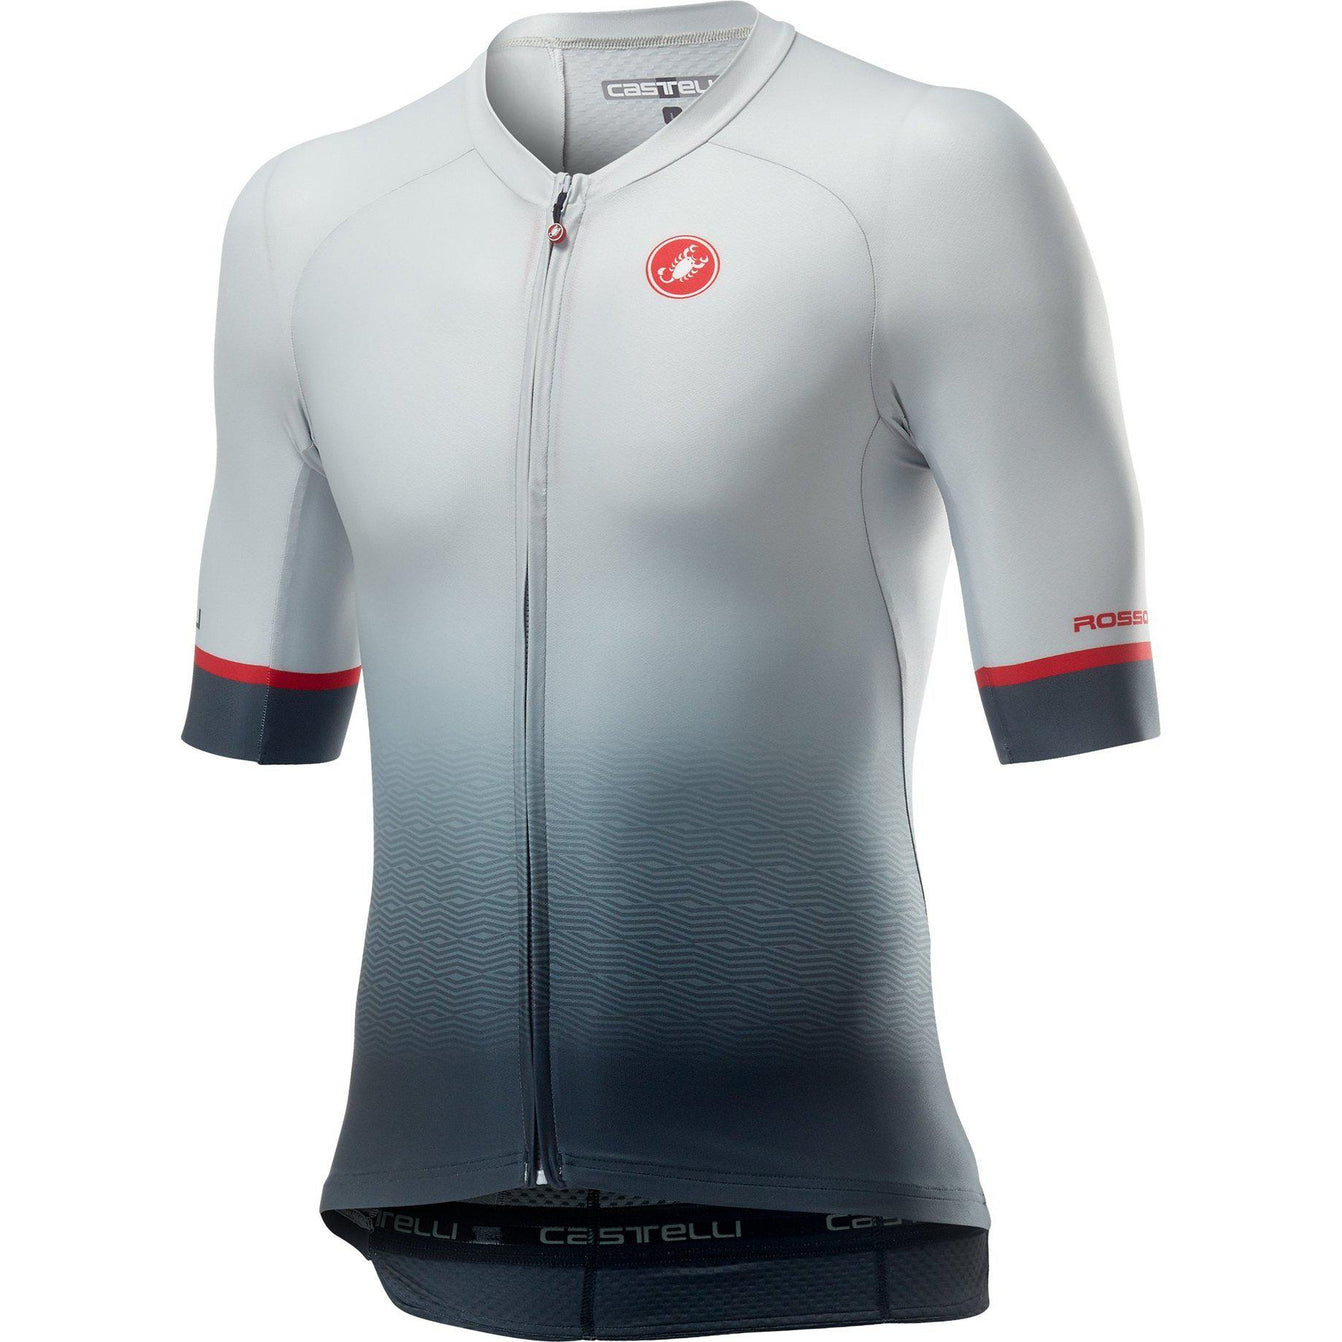 Castelli-Castelli Aero Race 6.0 Jersey-Silver Gray-XS-CS200118701-saddleback-elite-performance-cycling